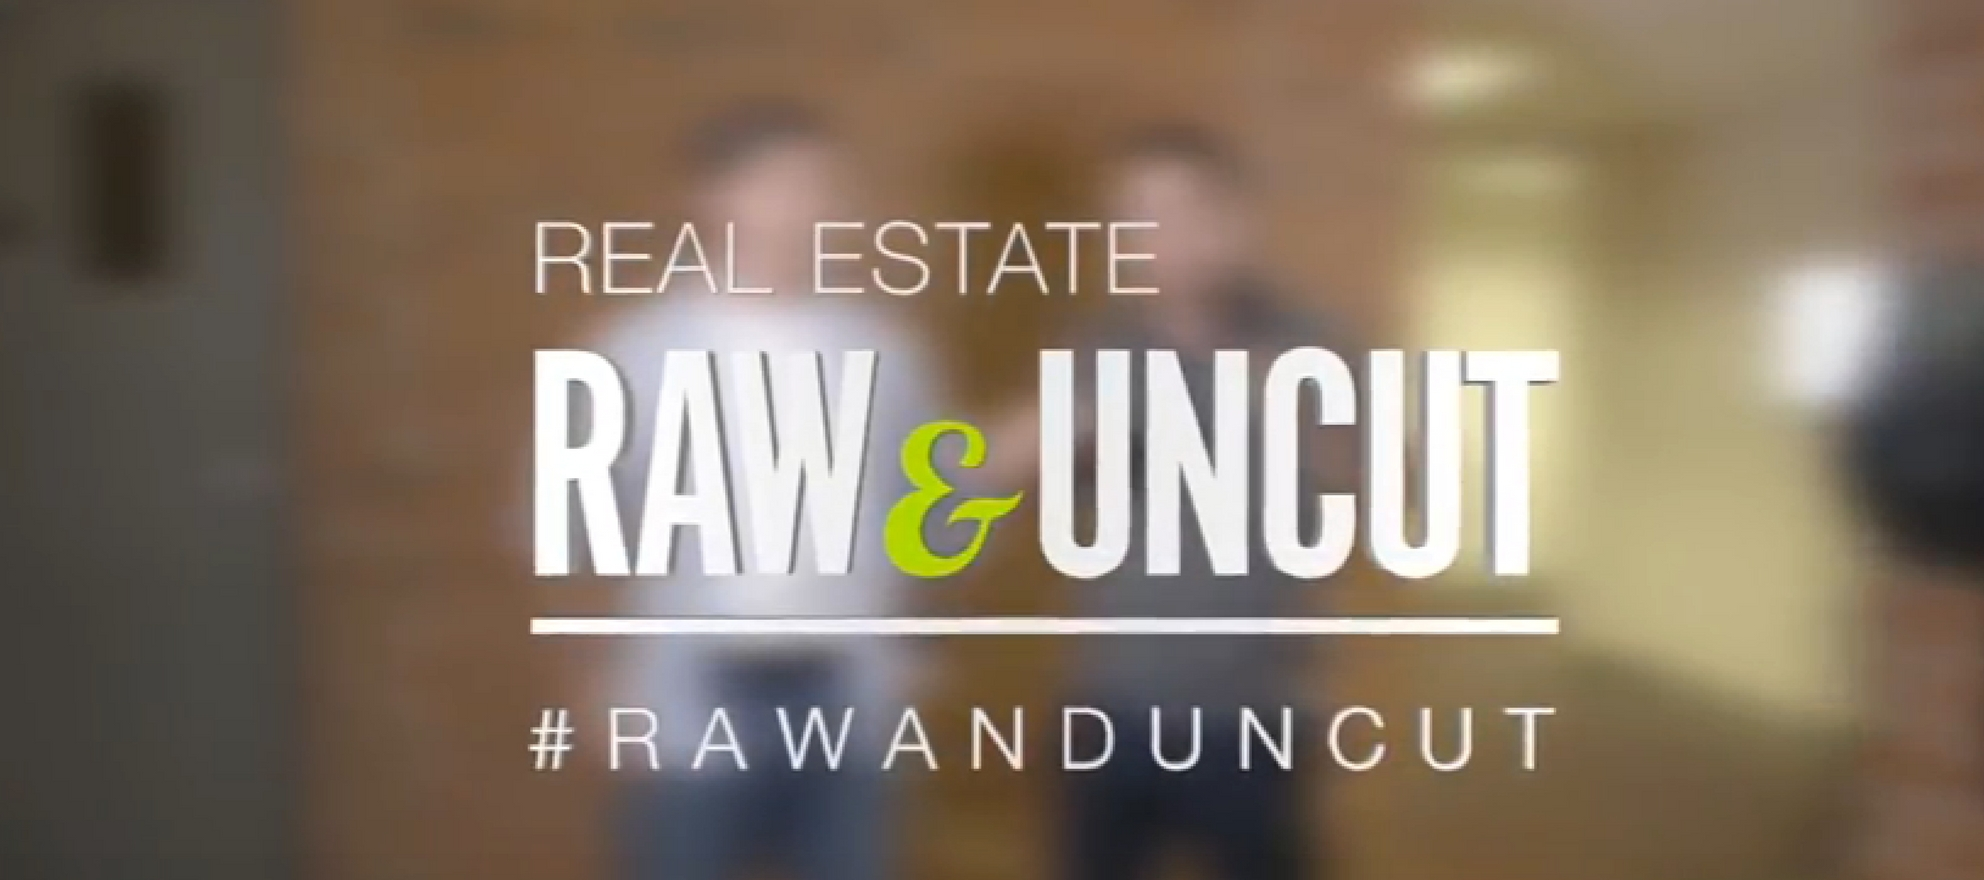 real estate raw and uncut byron lazine tim bray inspections